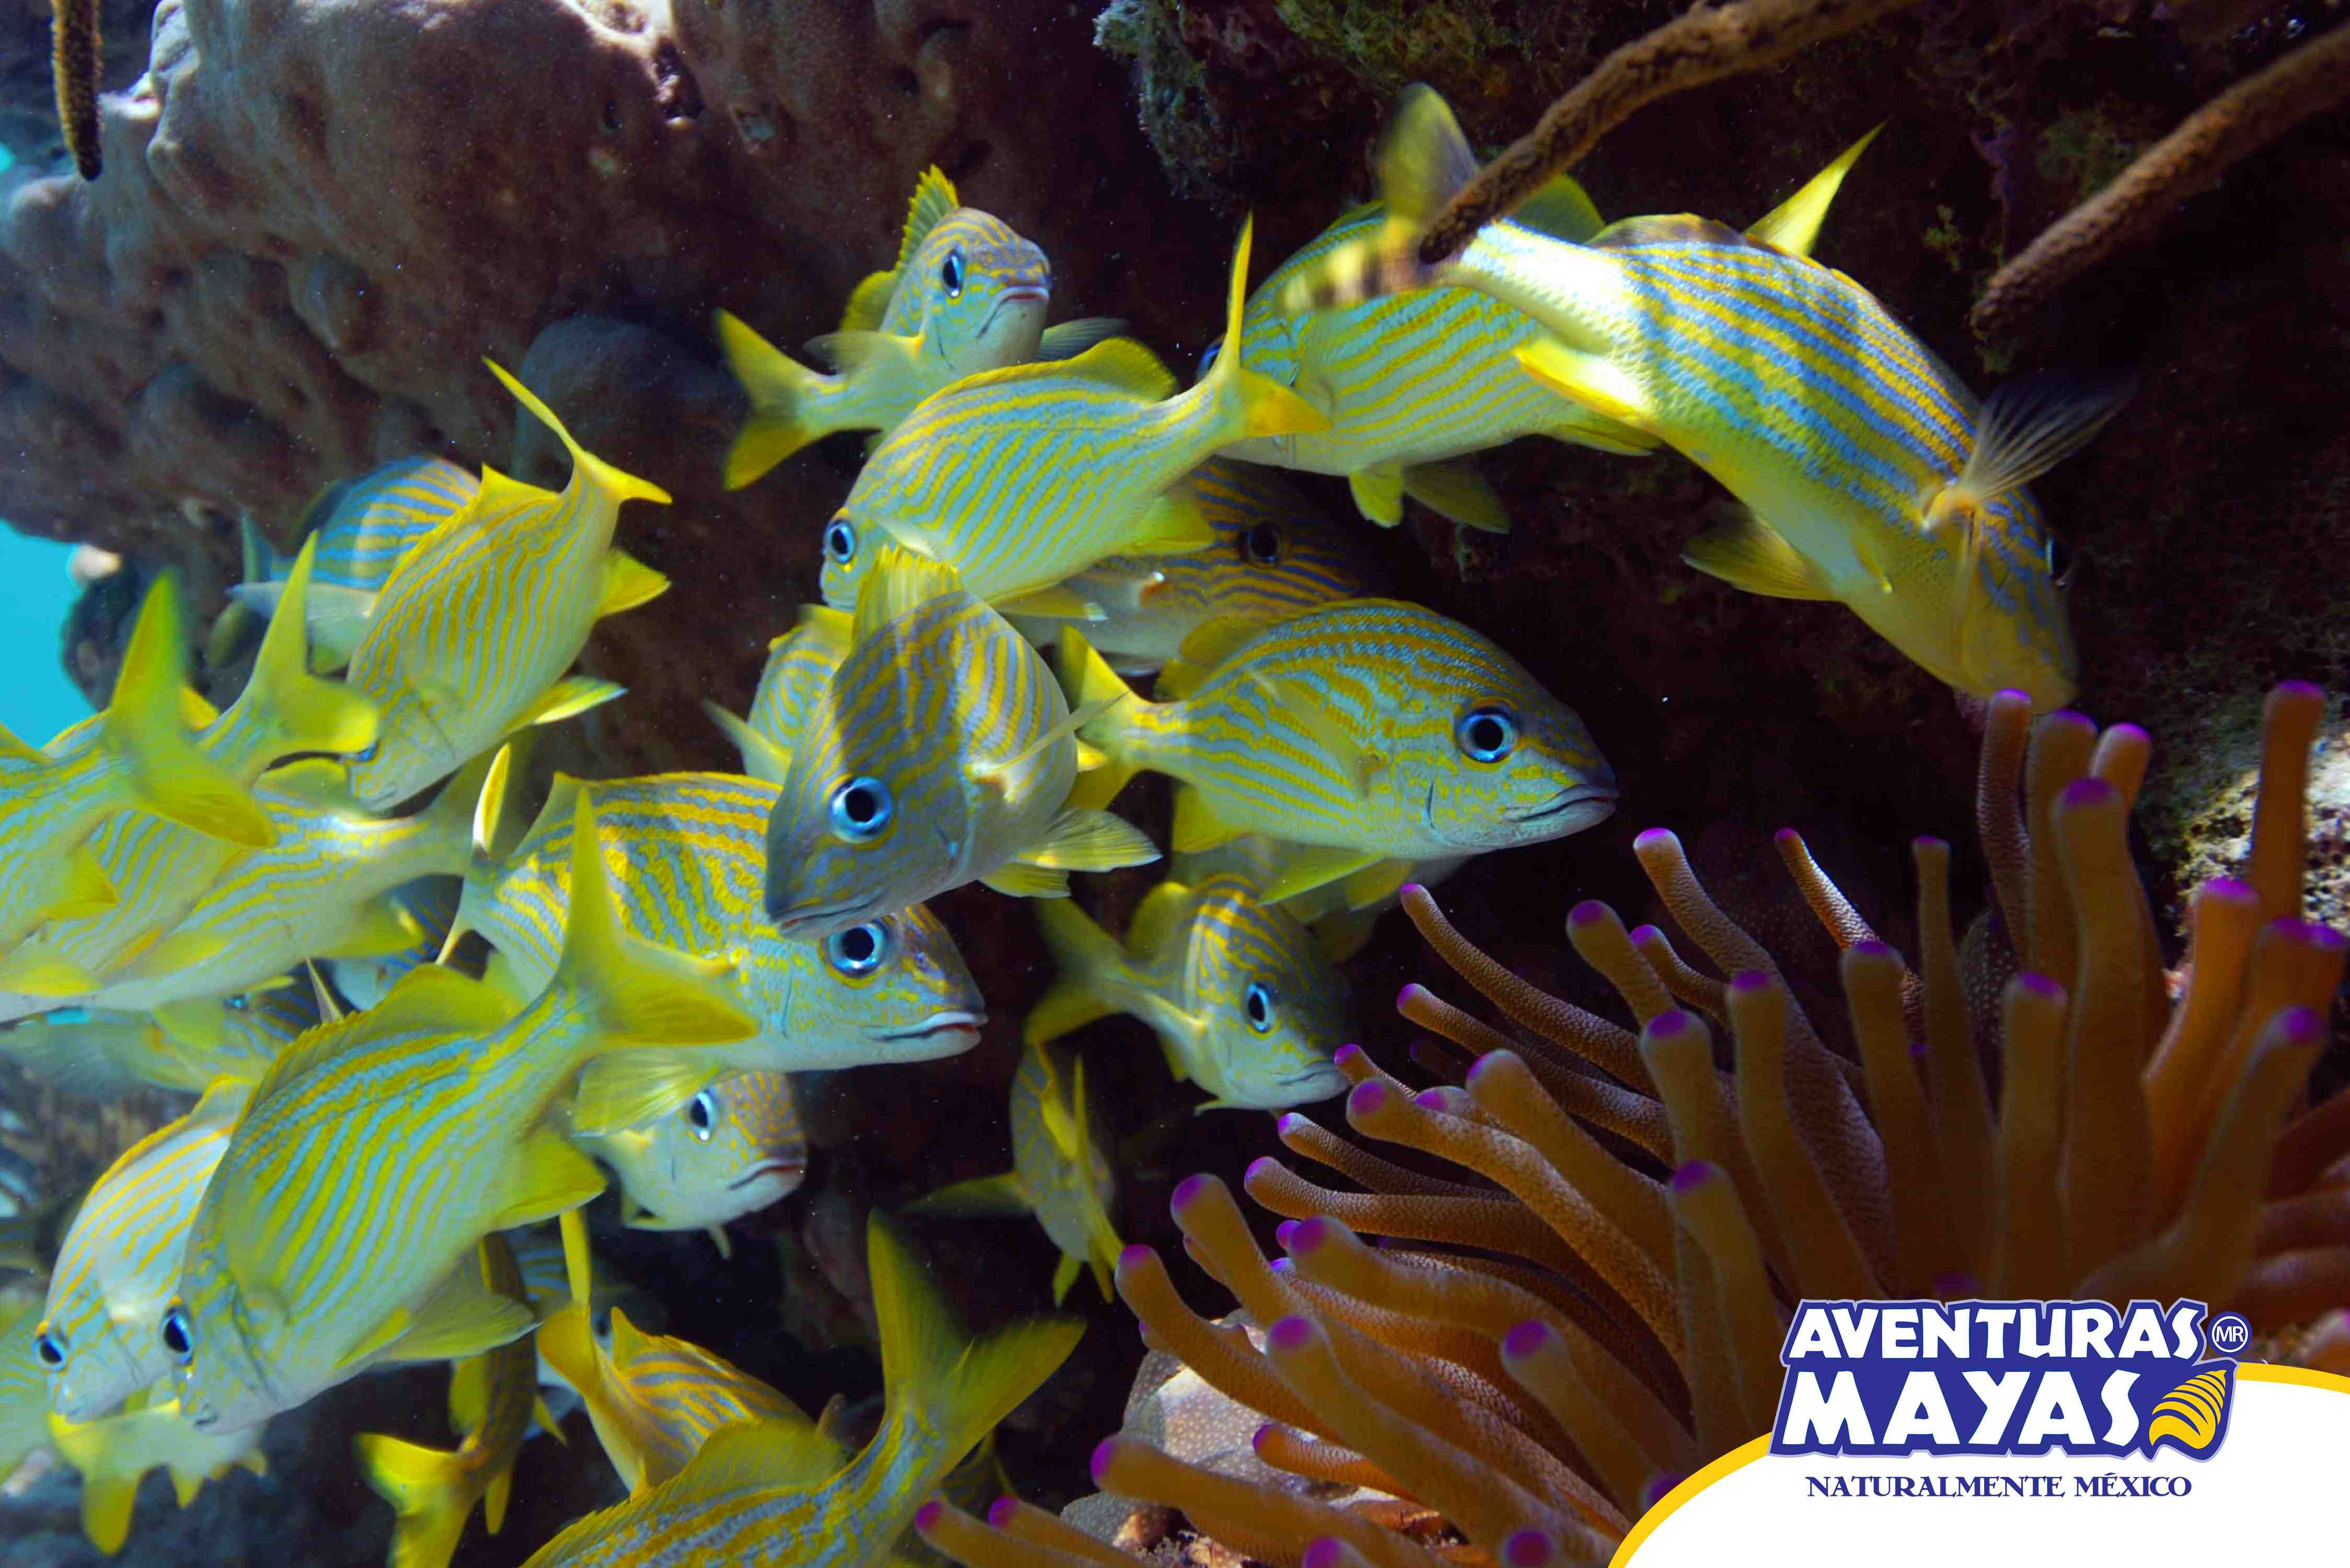 Mayan Adventure In Riviera - Last Minute Tours in Cancún and Riviera Maya